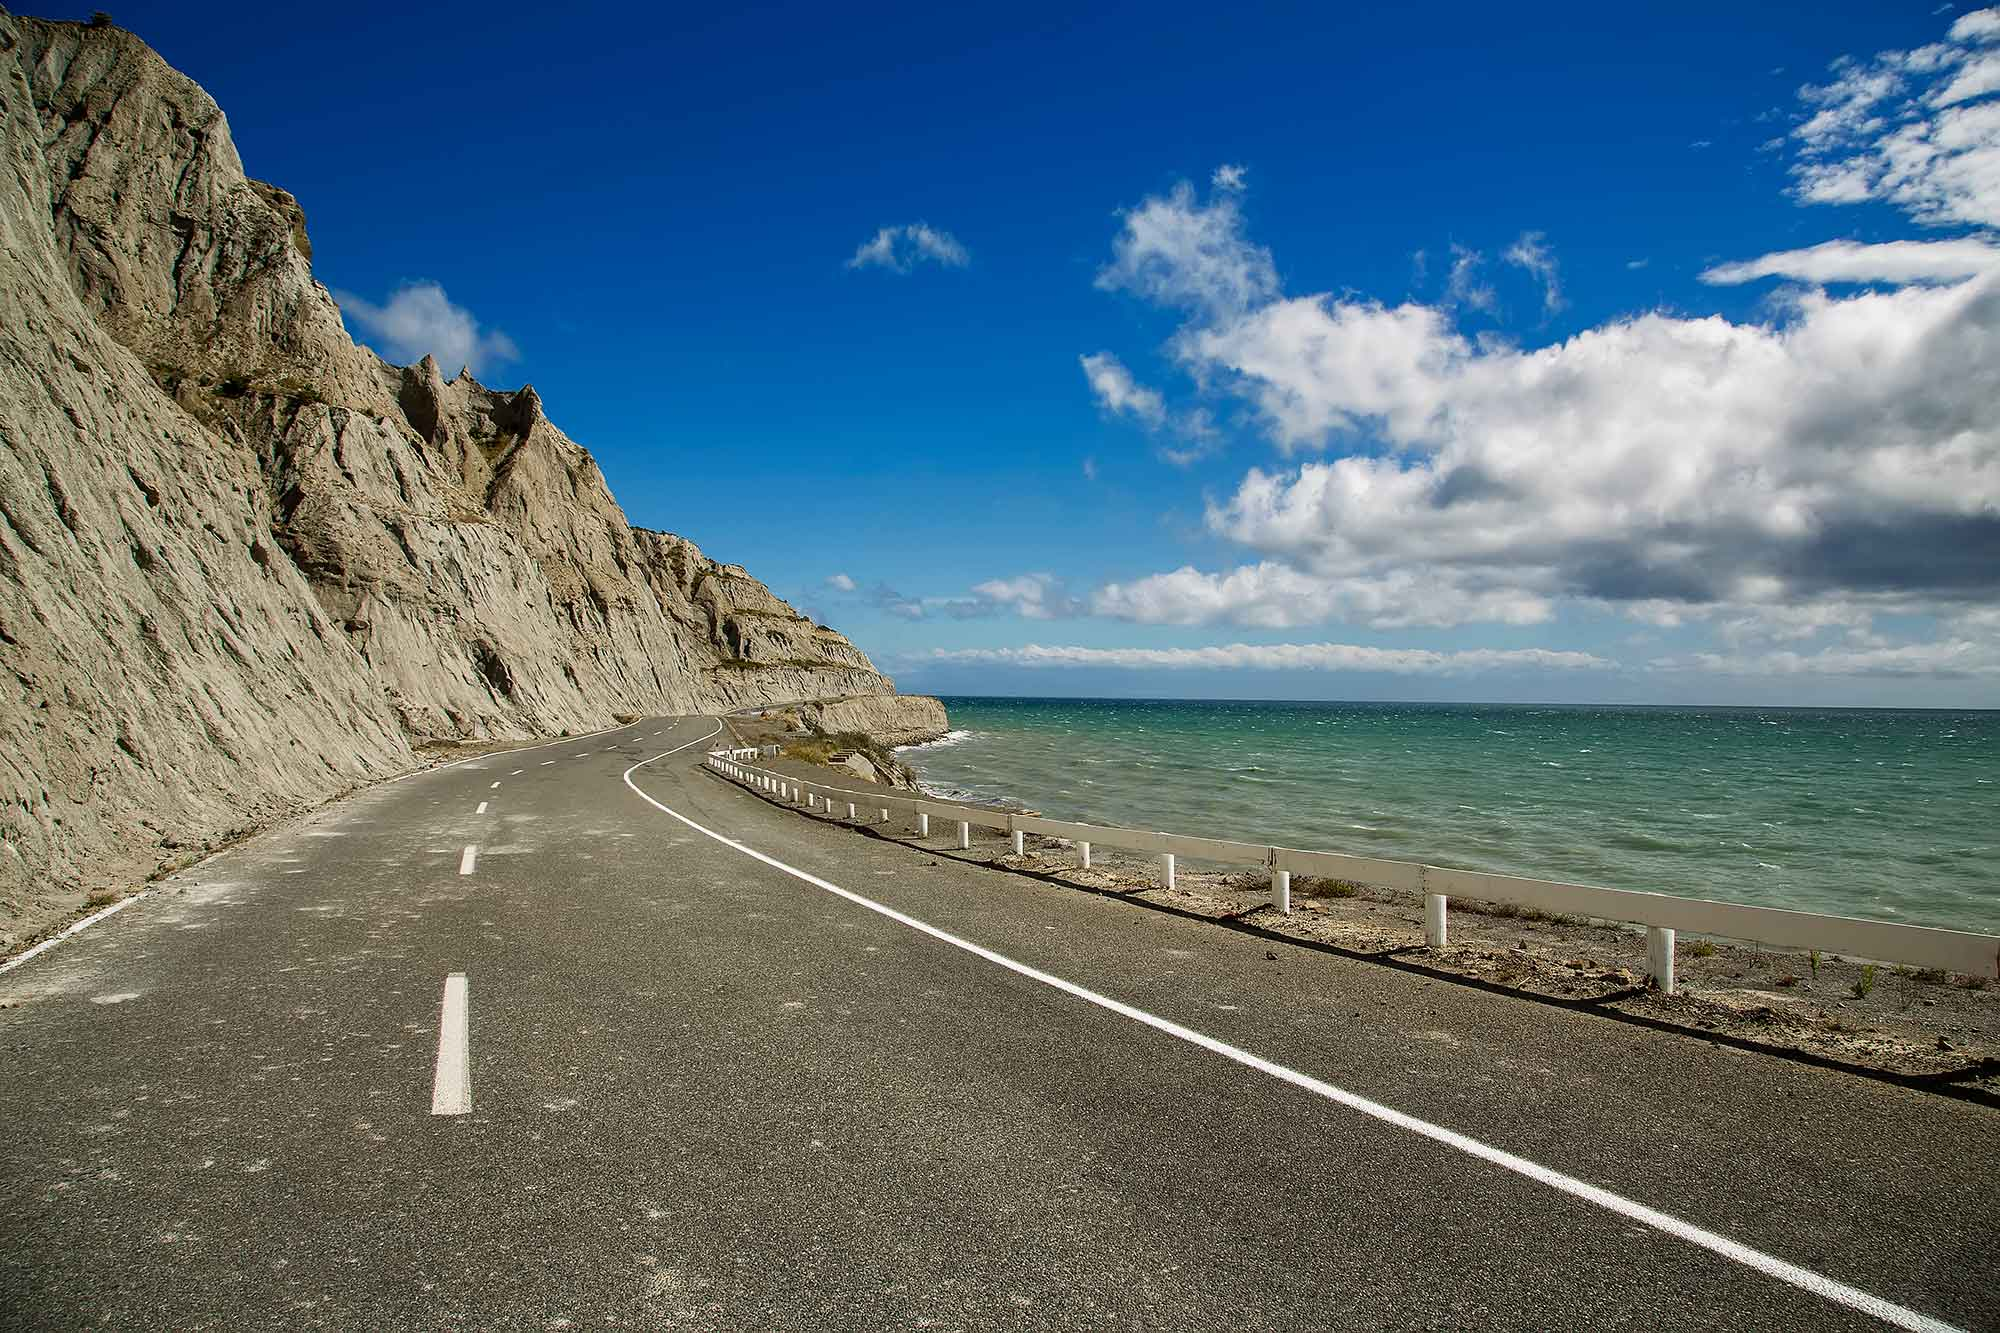 Ocean road on Cape Palliser, New Zealand. © Ulli Maier & Nisa Maier